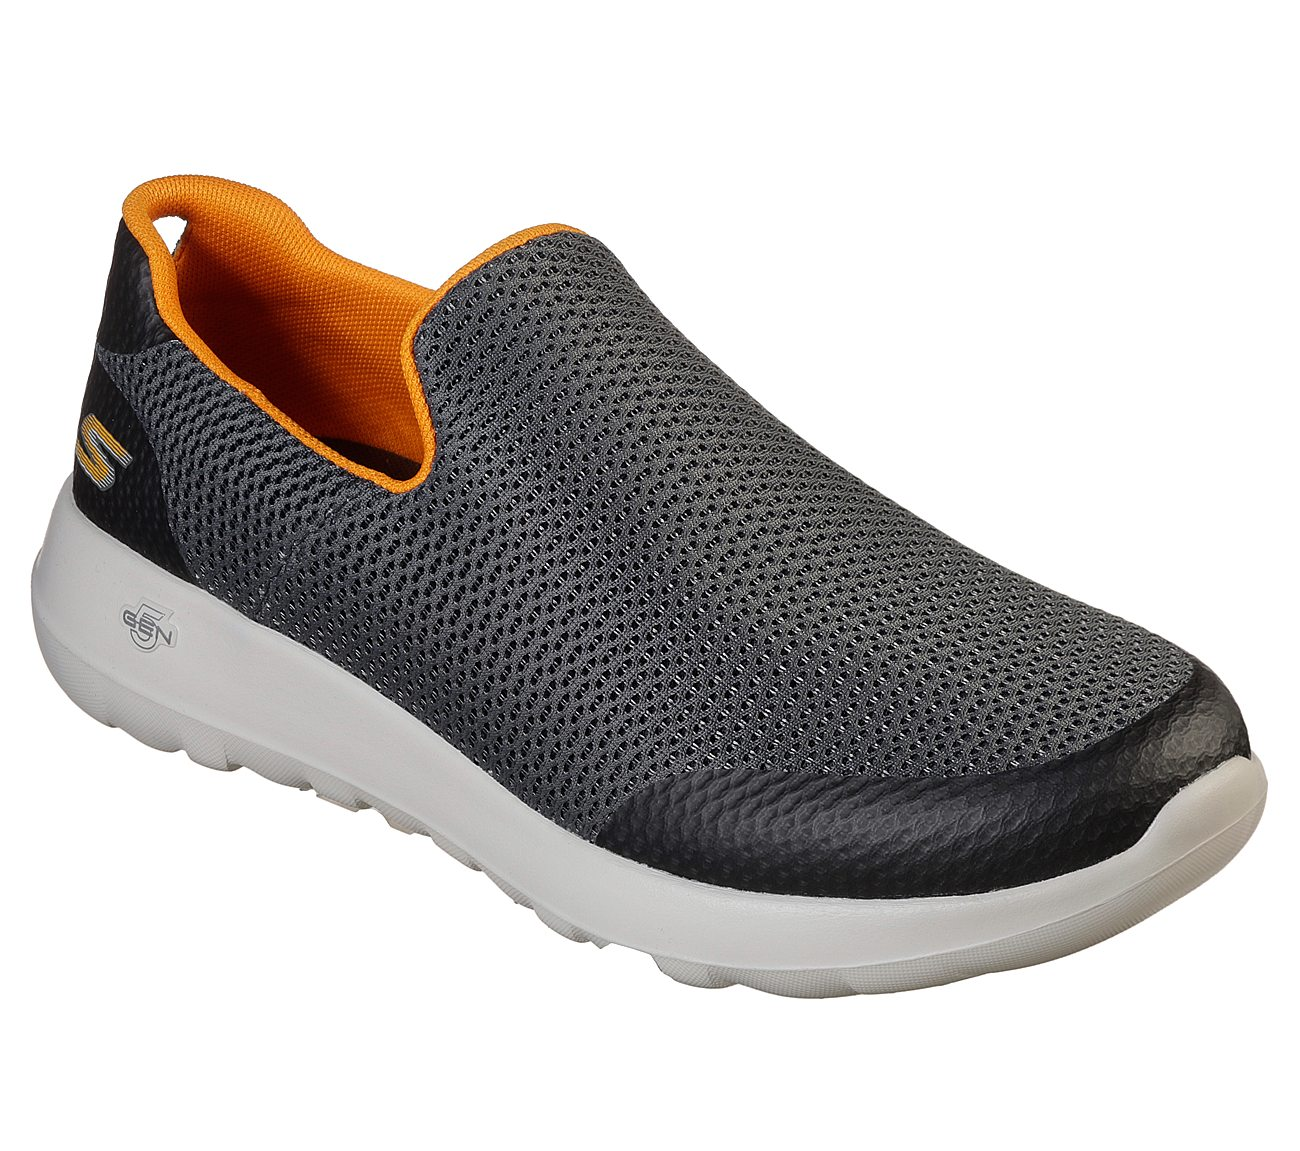 Skechers GOwalk Max - Focal